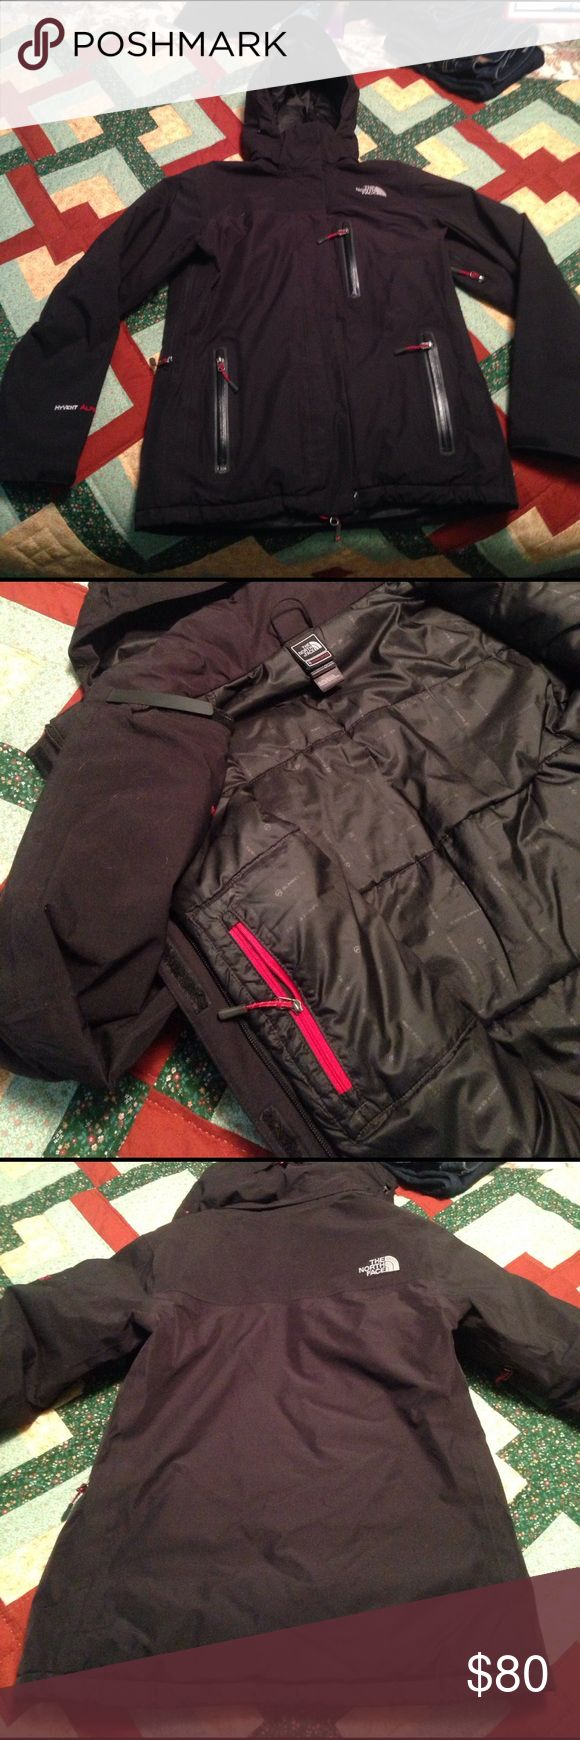 Womens North Face summit series winter coat sz M Medium North Face summit series black winter coat. It has been loved so there are some parts of the coat with pulling but it is possible to remove with some t.l.c. The hood zips off, there are pockets inside and out and the coat falls to about mid hip. It's a great piece I just received a new one for Xmas and don't want this to go to waste. I DO have a white dog so there will be a few hairs on it! Again, it's a great jacket, just needs some…